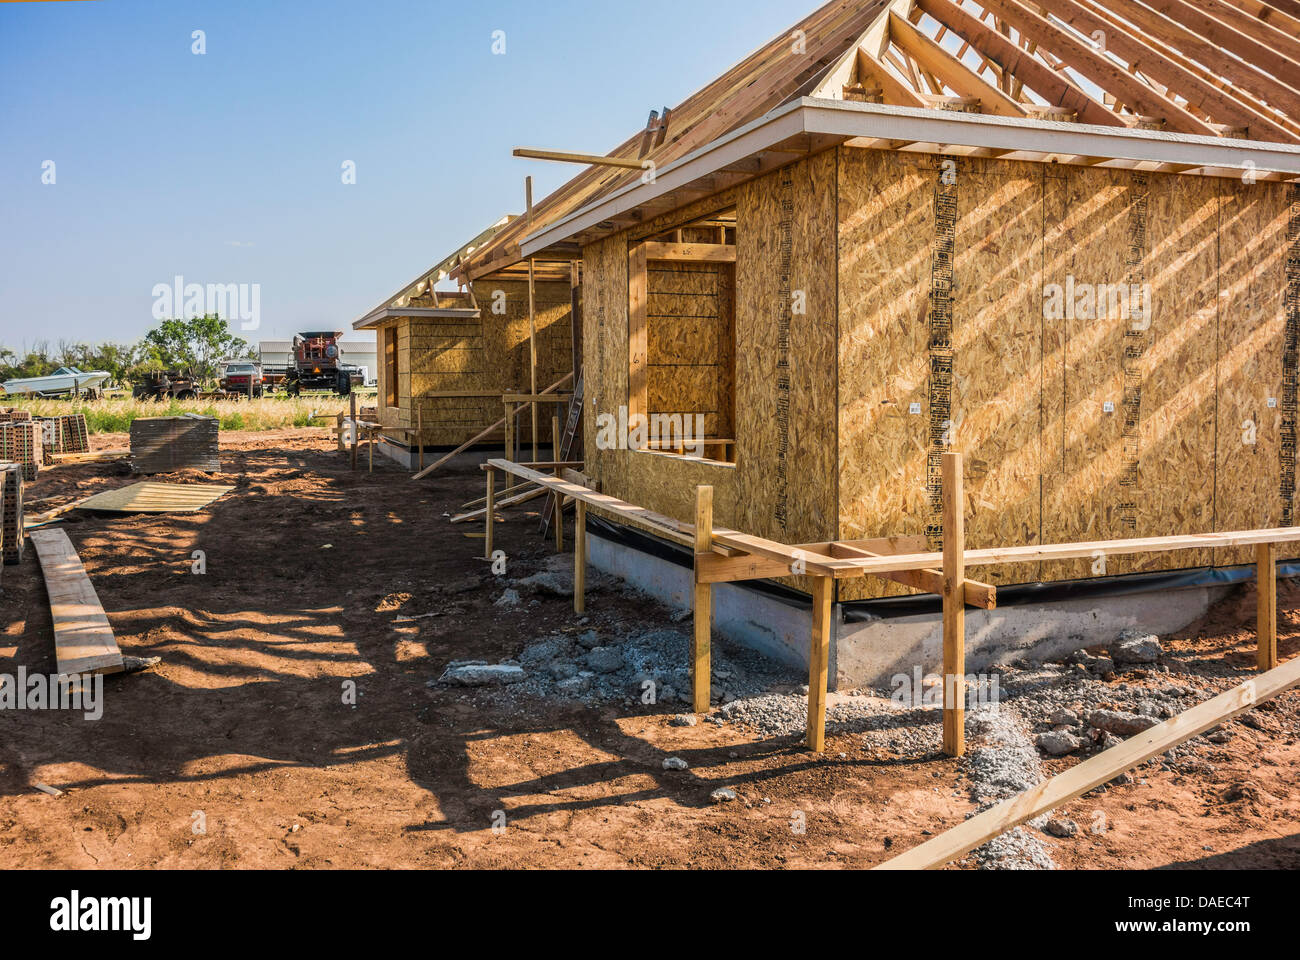 New home custom construction in rural Oklahoma, USA. Oblique view. Stock Photo